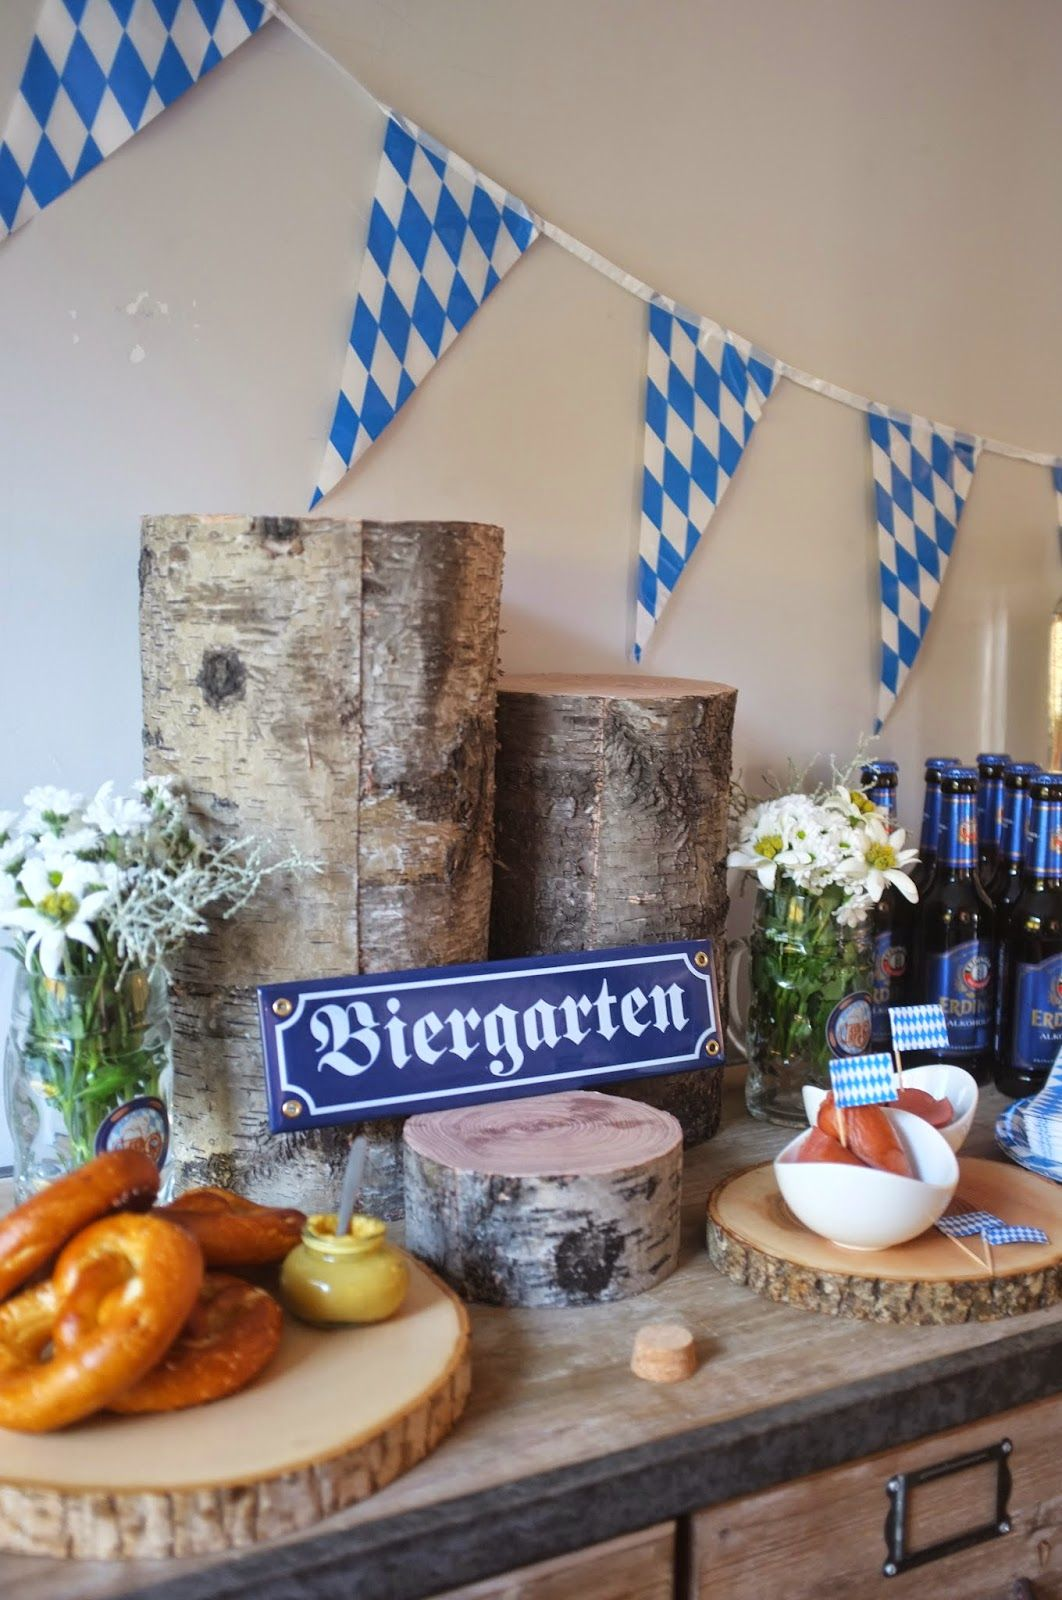 oktoberfest food oktoberfest pinterest oktoberfest. Black Bedroom Furniture Sets. Home Design Ideas